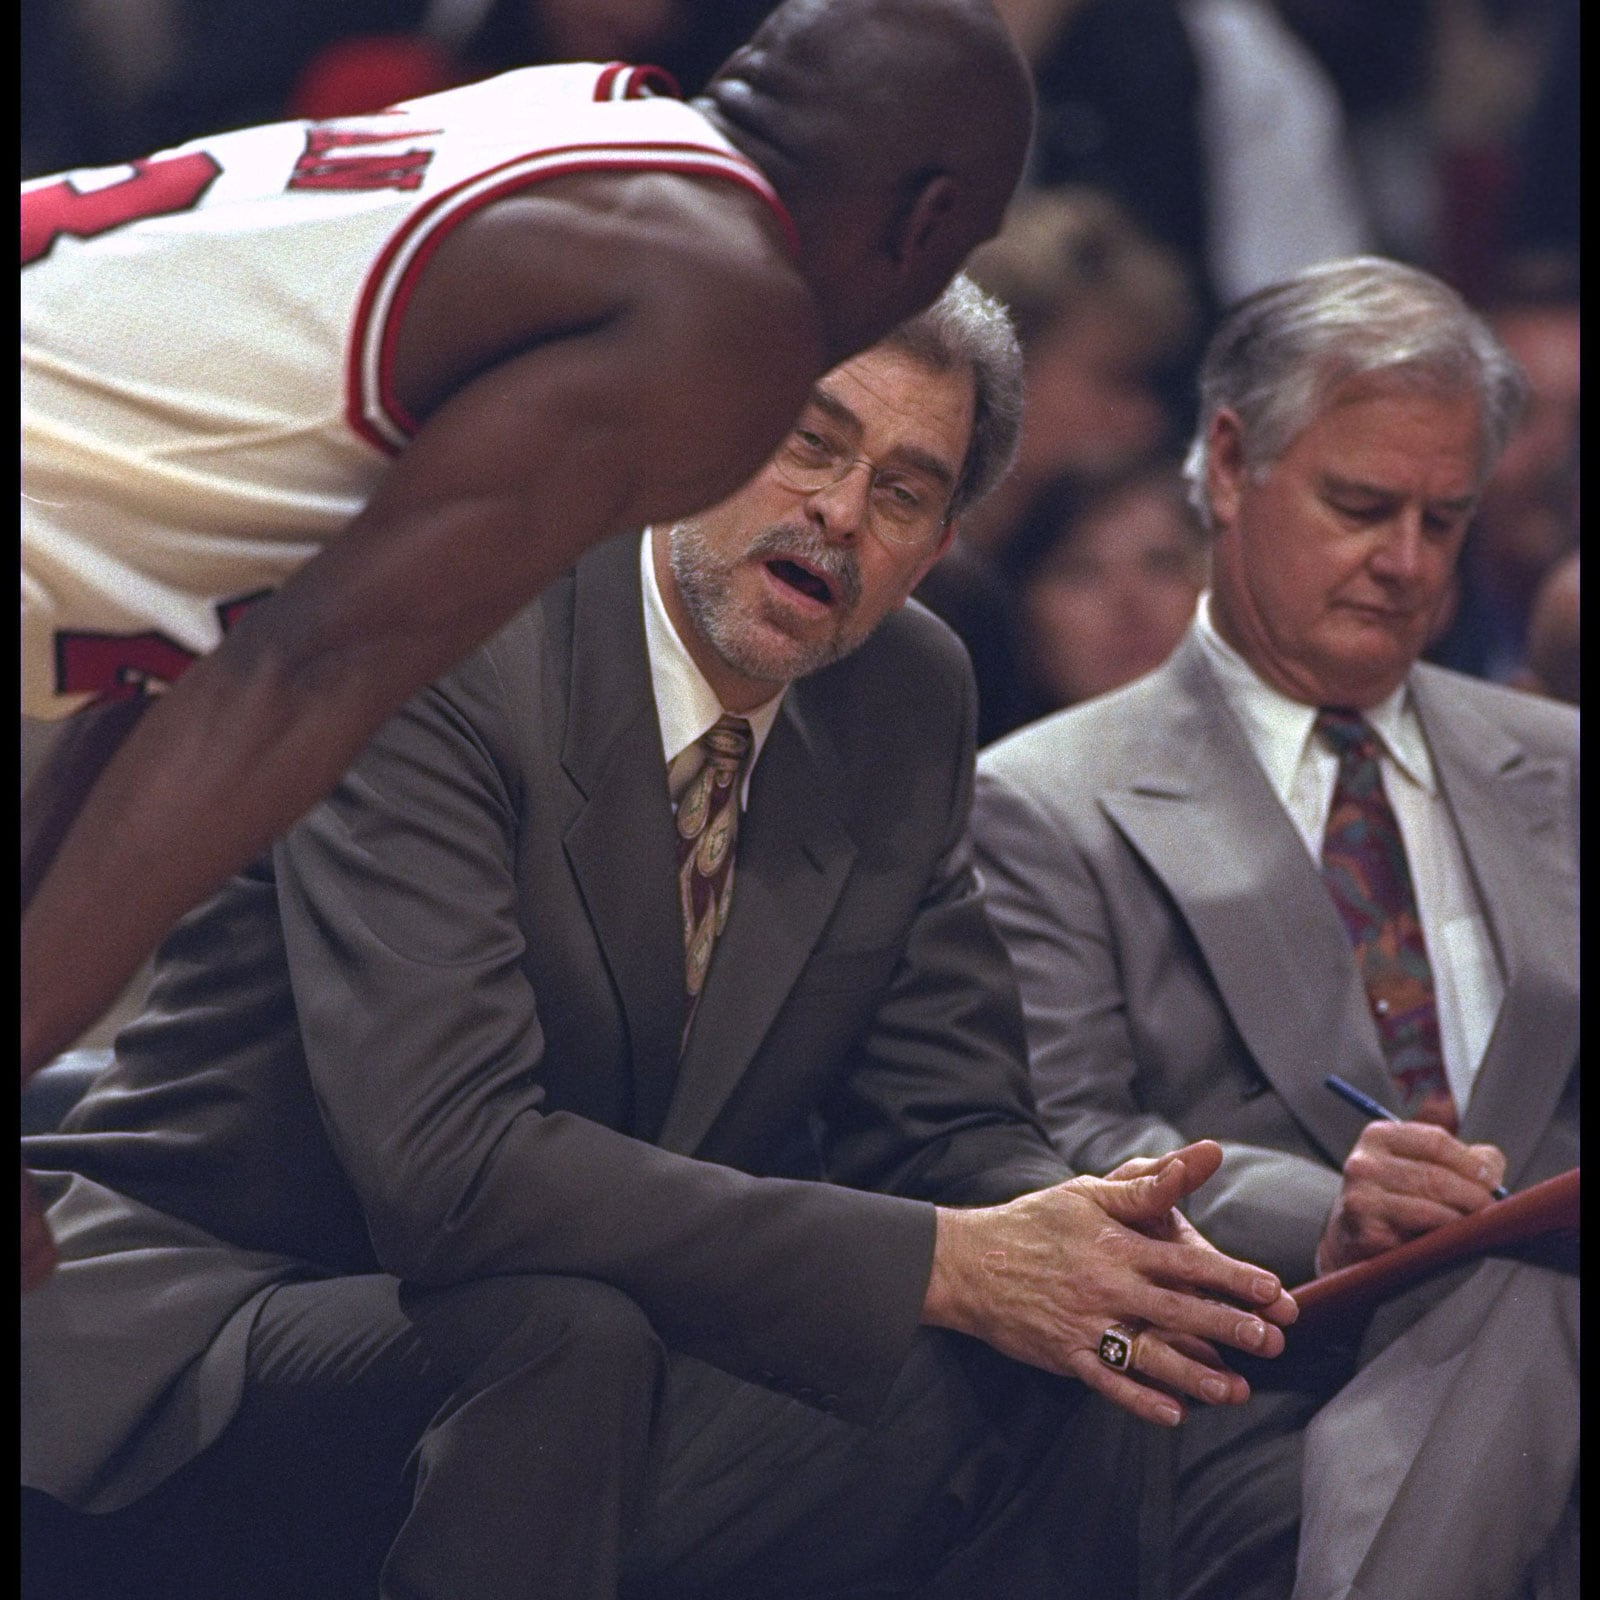 Head coach Phil Jackson of the Chicago Bulls talks with Michael Jordan and Tex Winter during the first round of the NBA Playoffs against the Washington Bullets at United Center in Chicago, Illinois